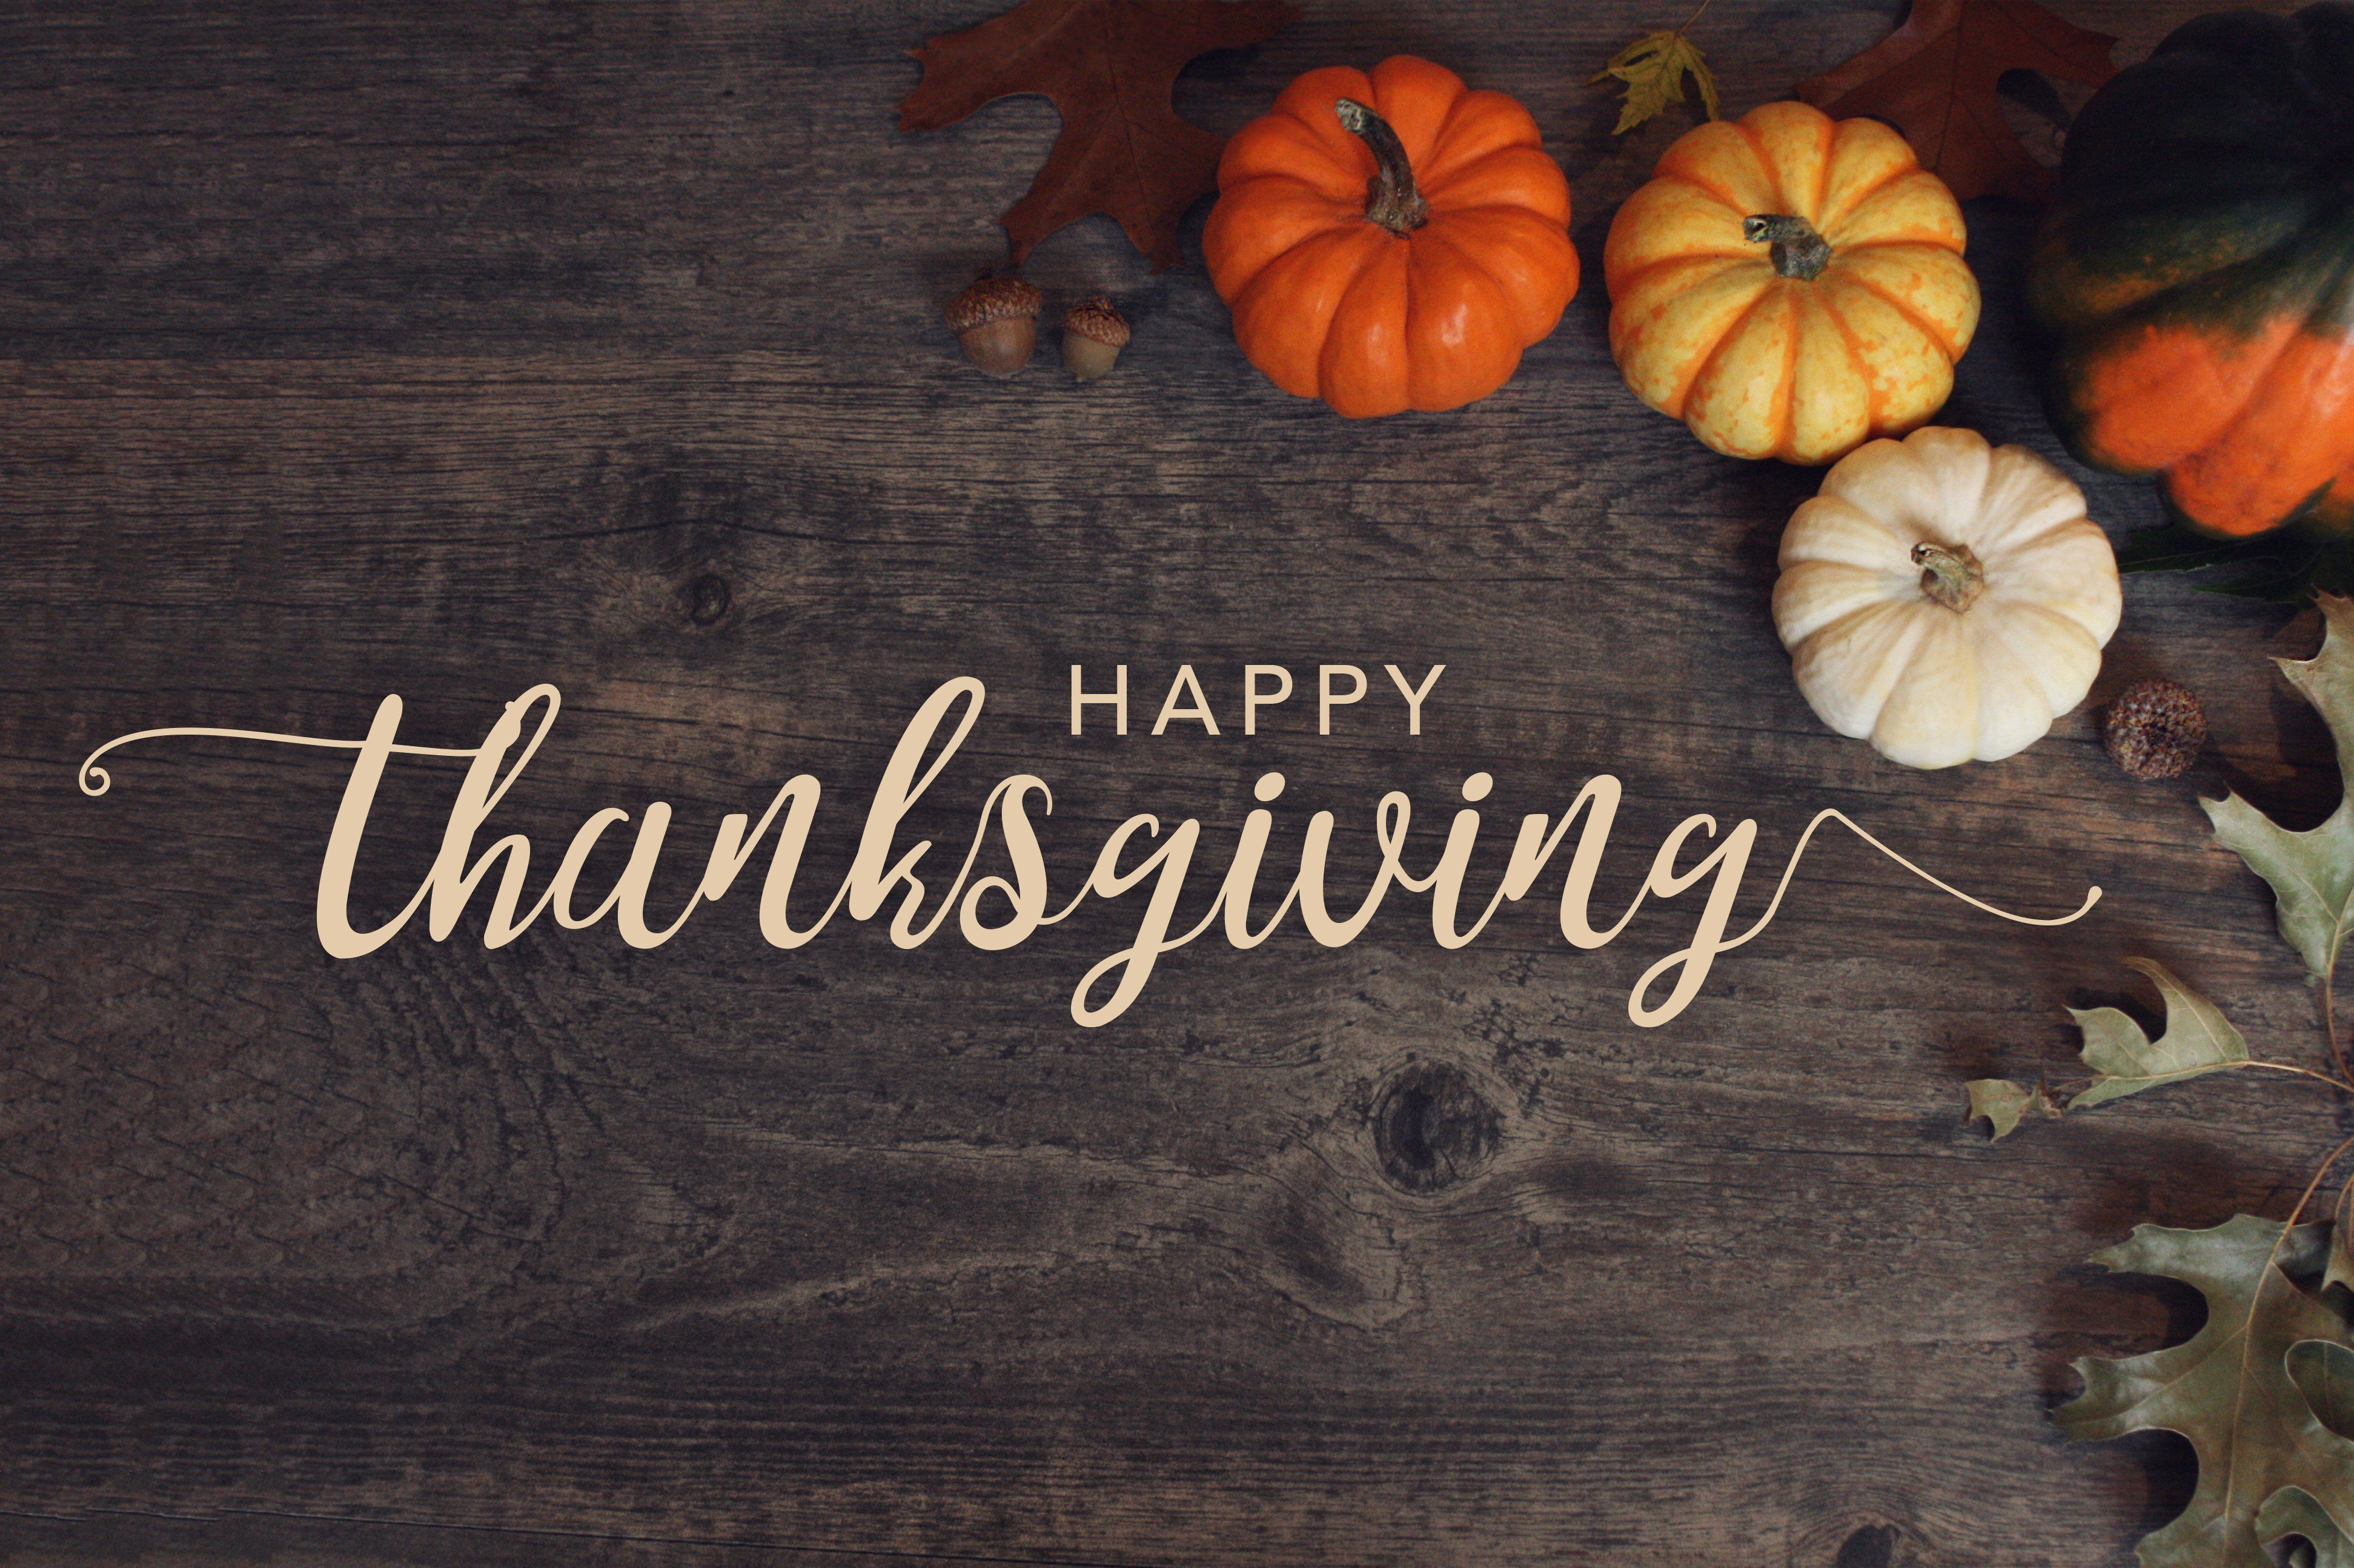 67 Thanksgiving Quotes To Share With Your Loved Ones In 2020 Happy Thanksgiving Pictures Happy Thanksgiving Images Thanksgiving Pictures